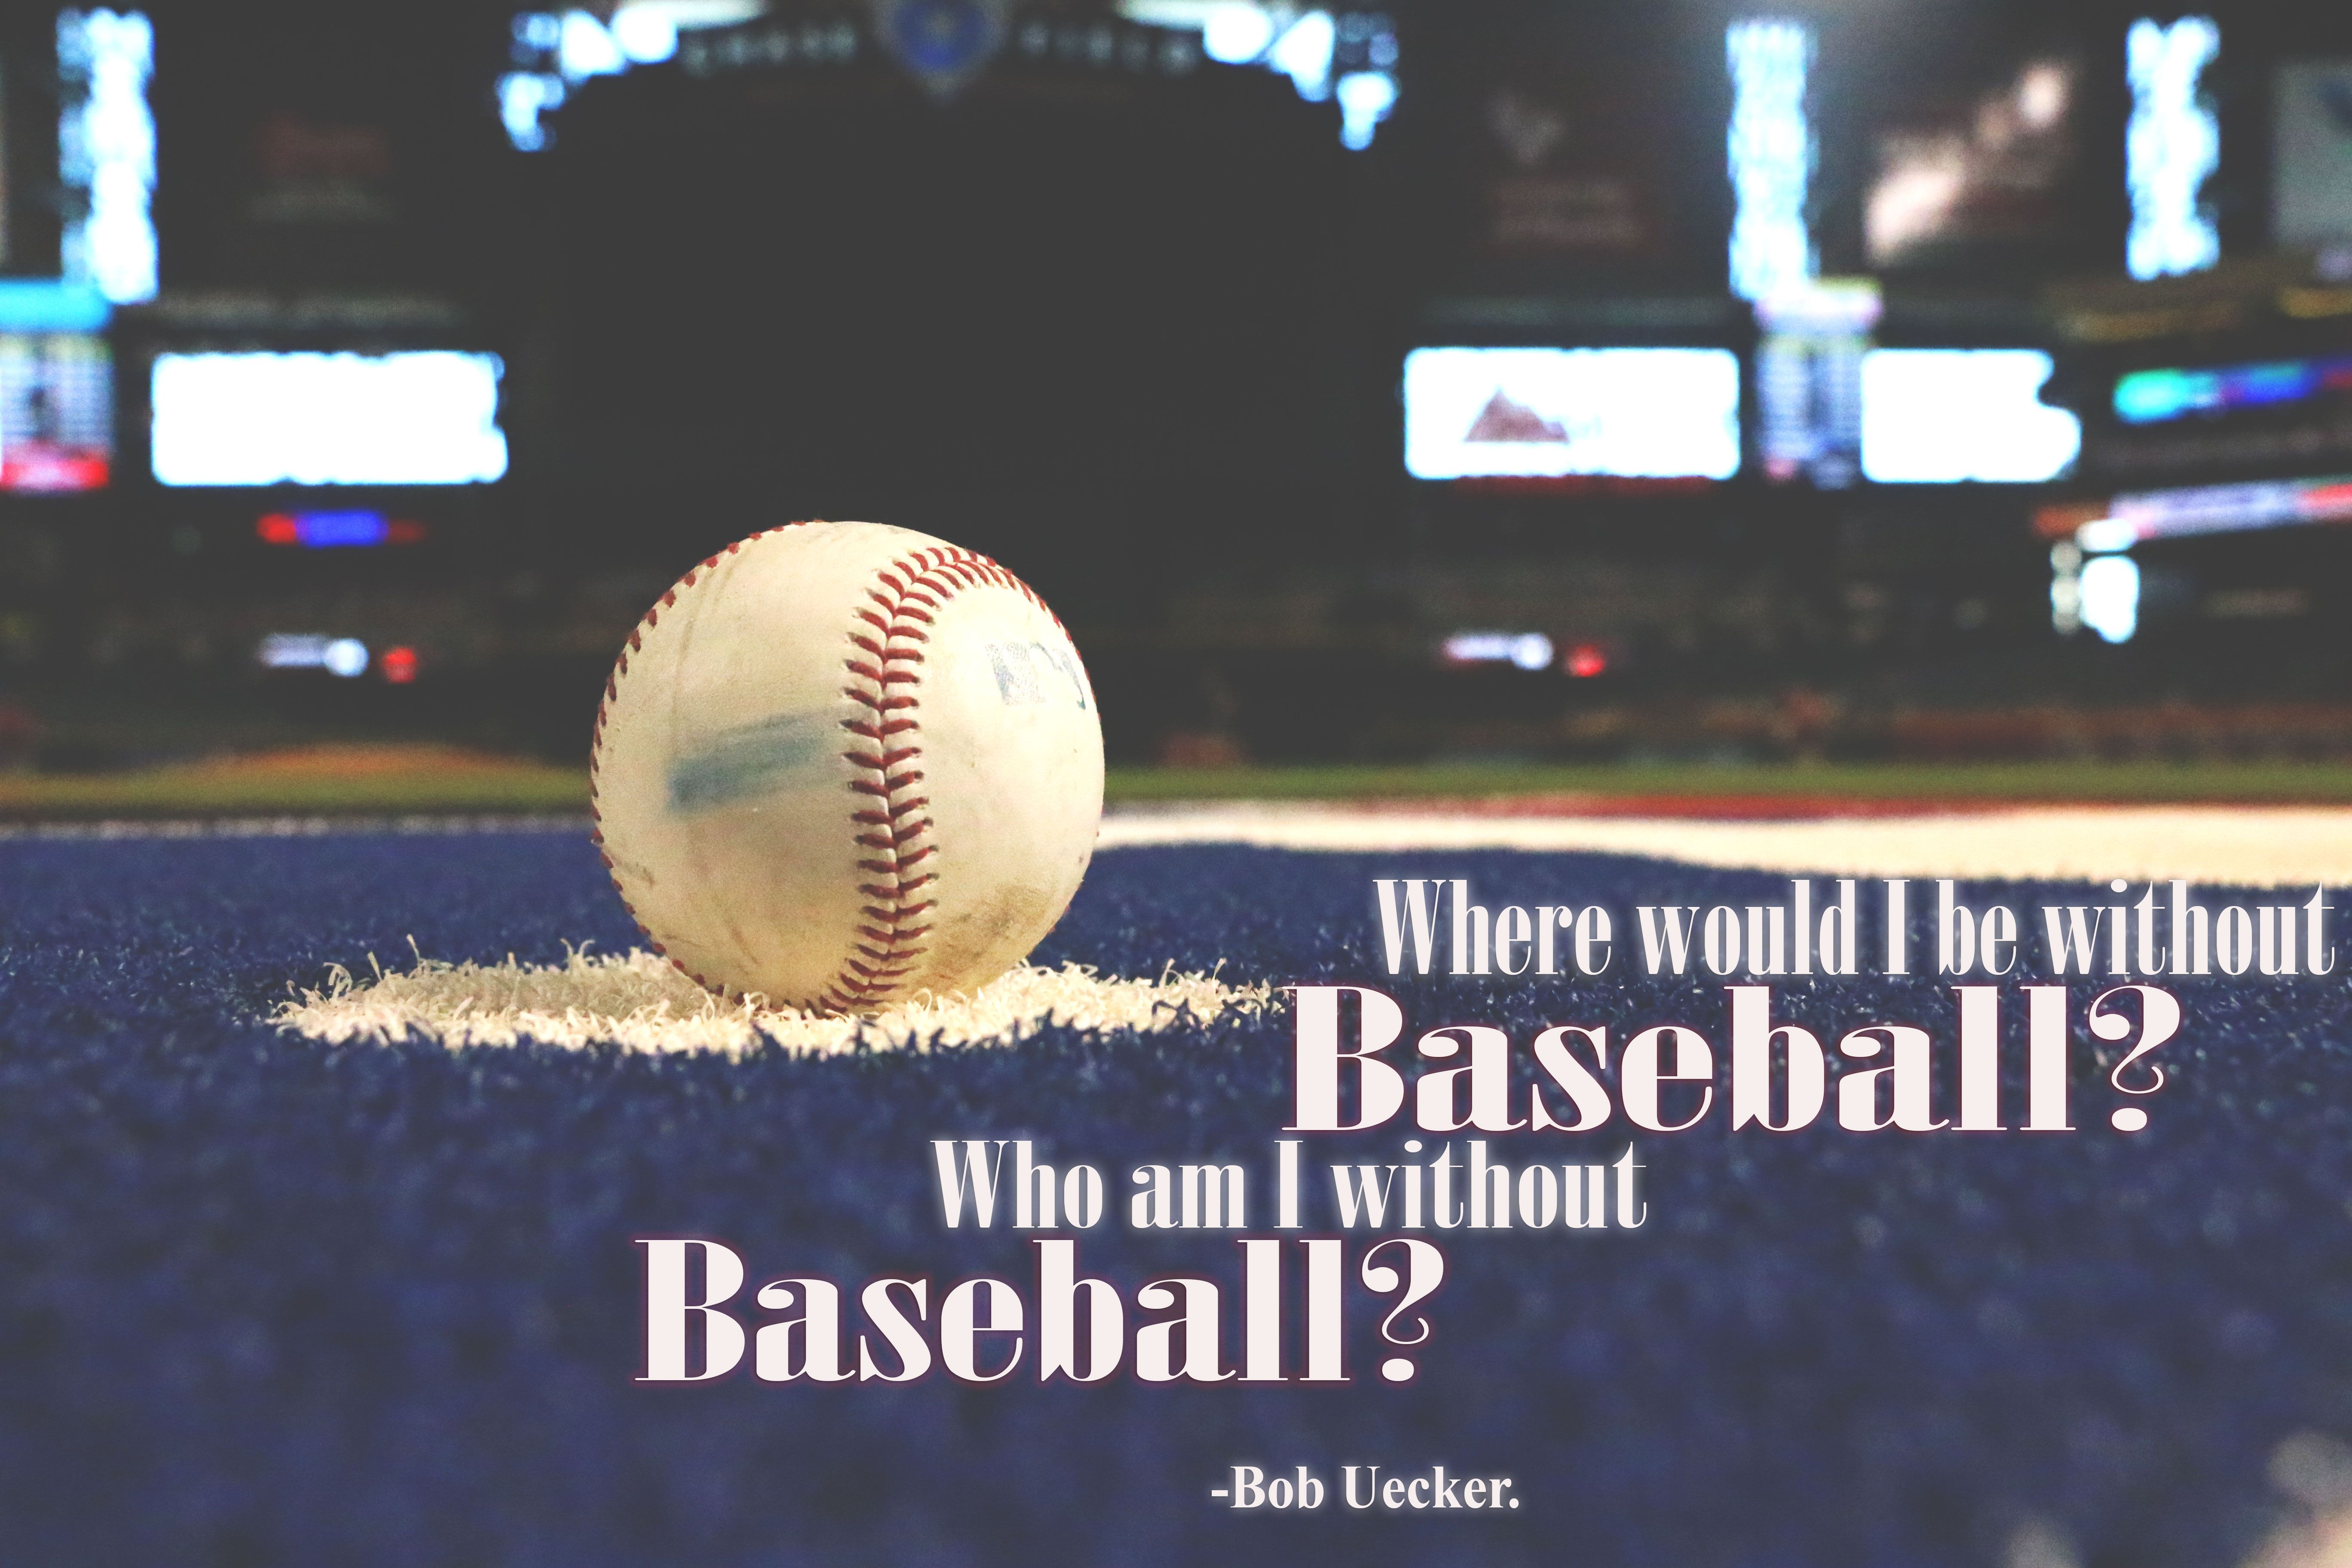 Baseball Quotes About Life What's A Life Without Baseball Anyways Bobuecker  Baseballisms